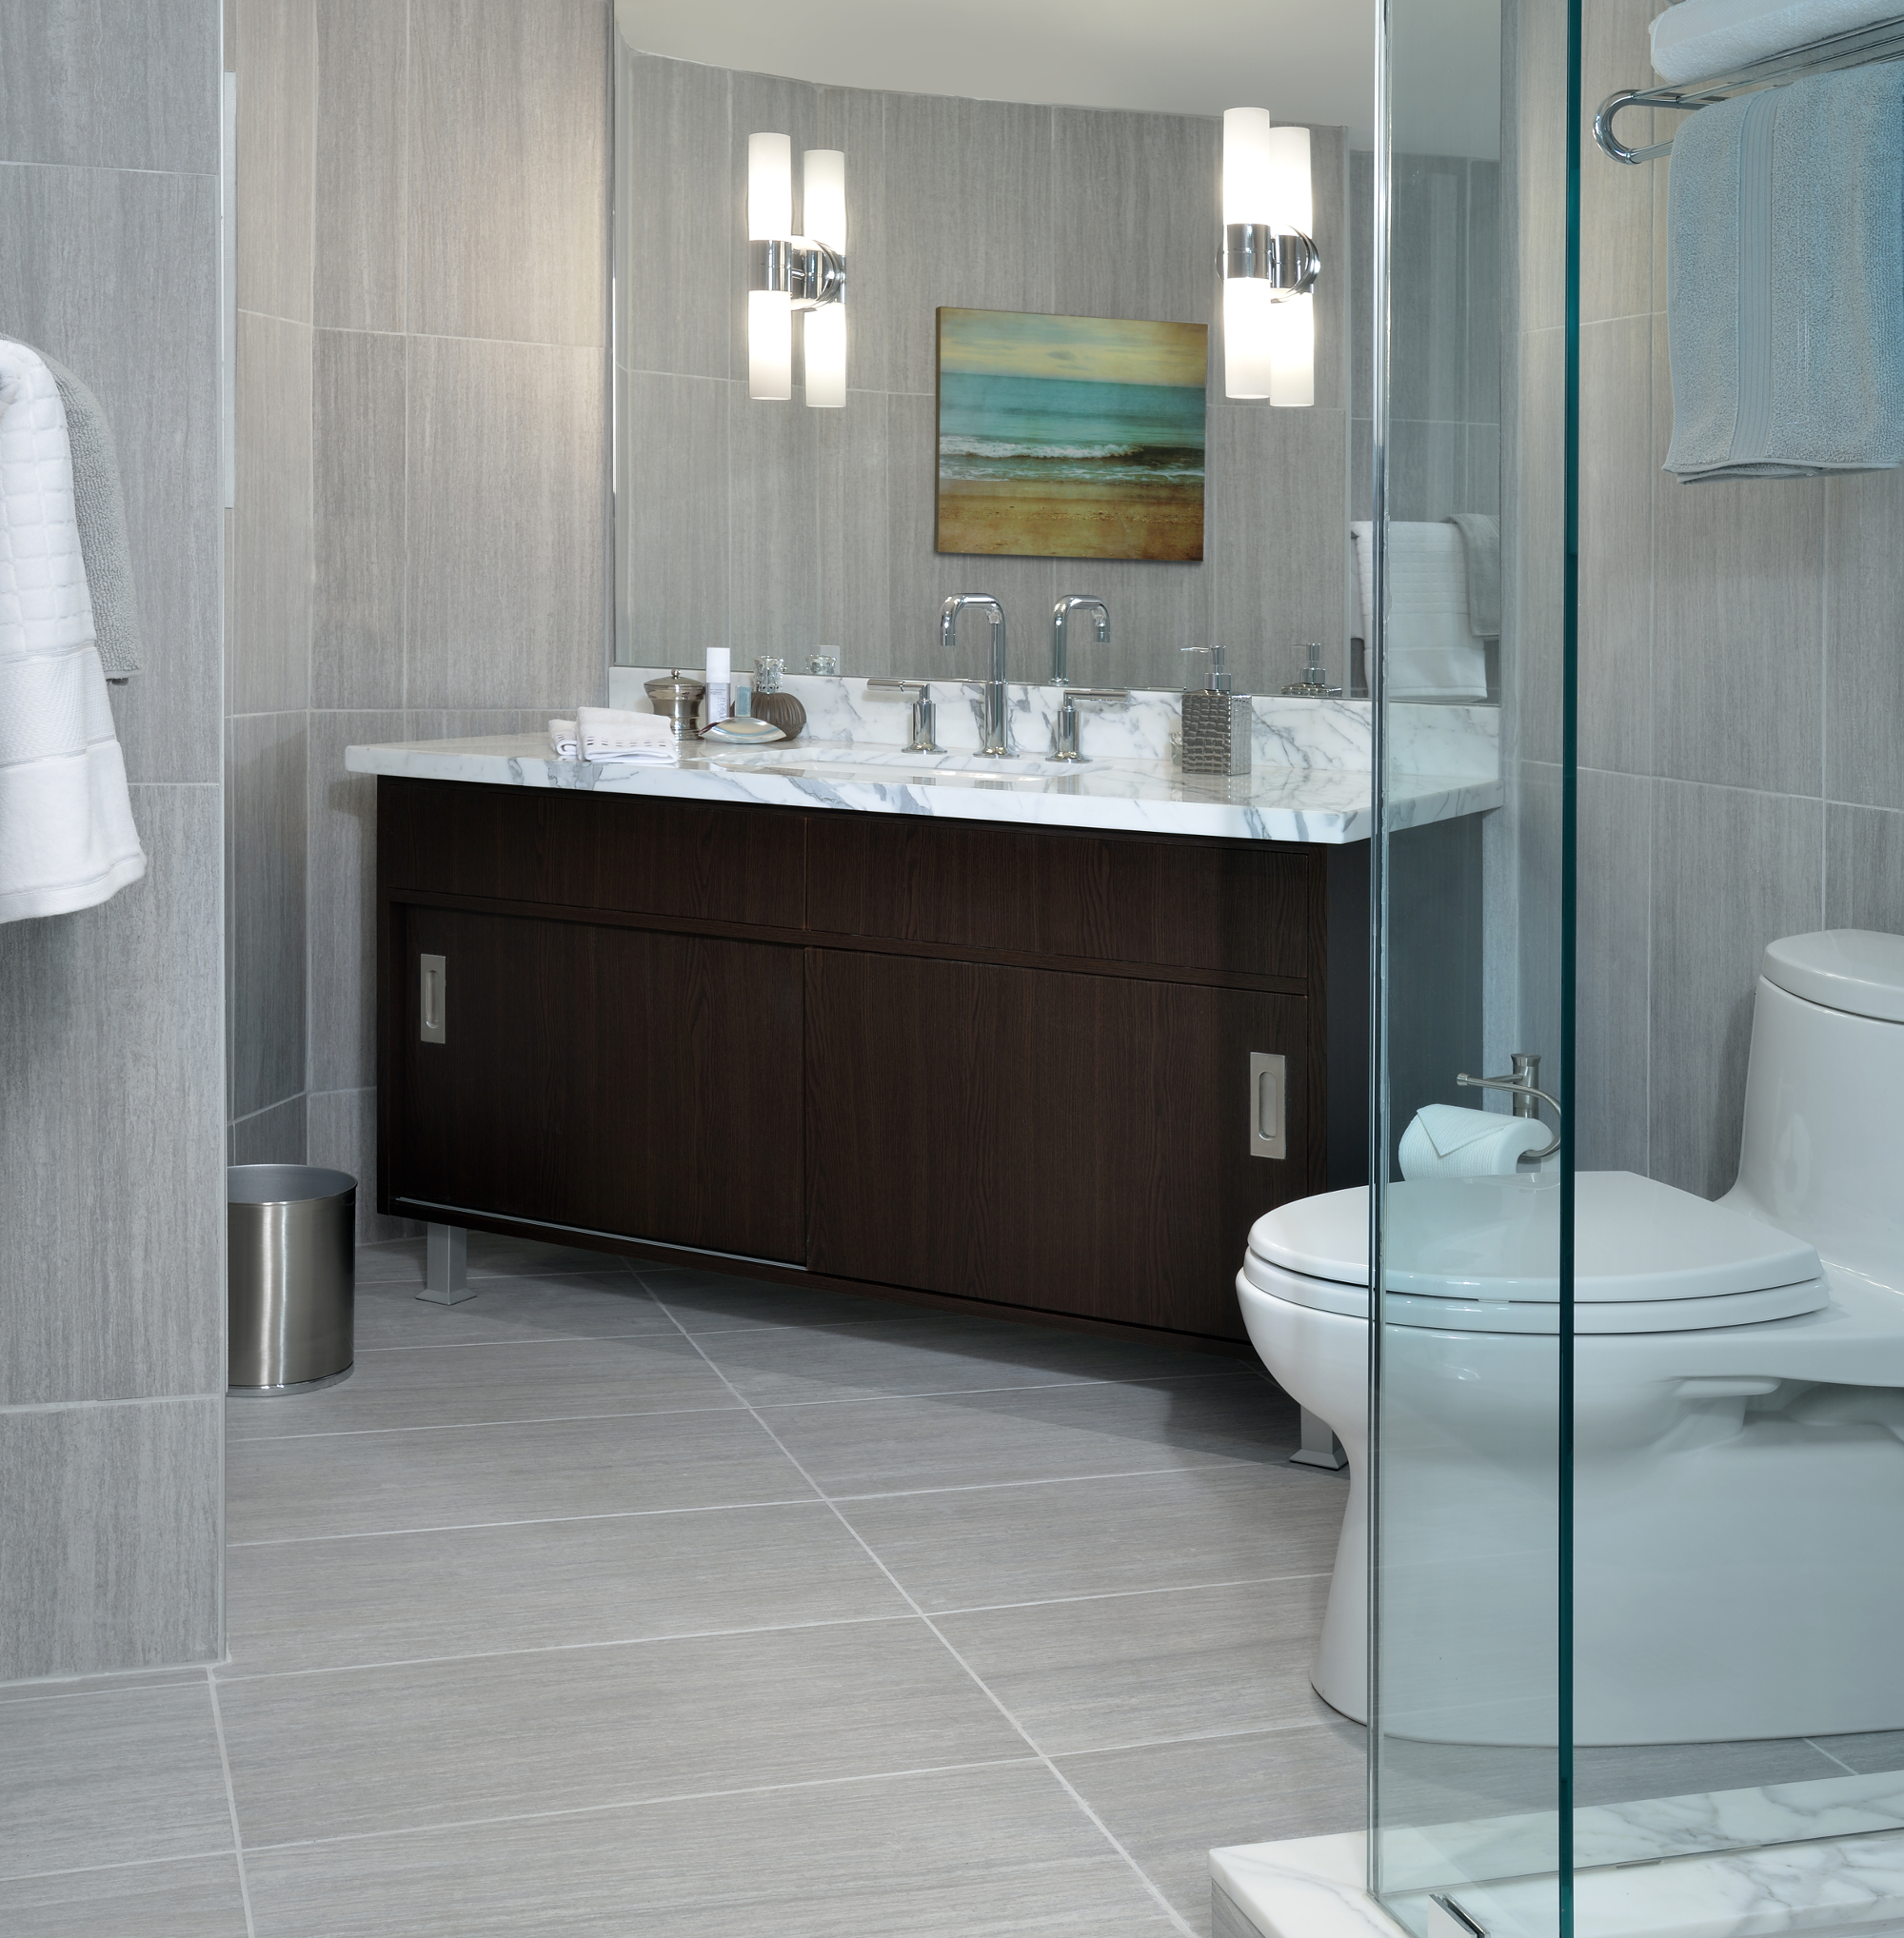 Bathroom: Bathroom Renovation Budget Breakdown